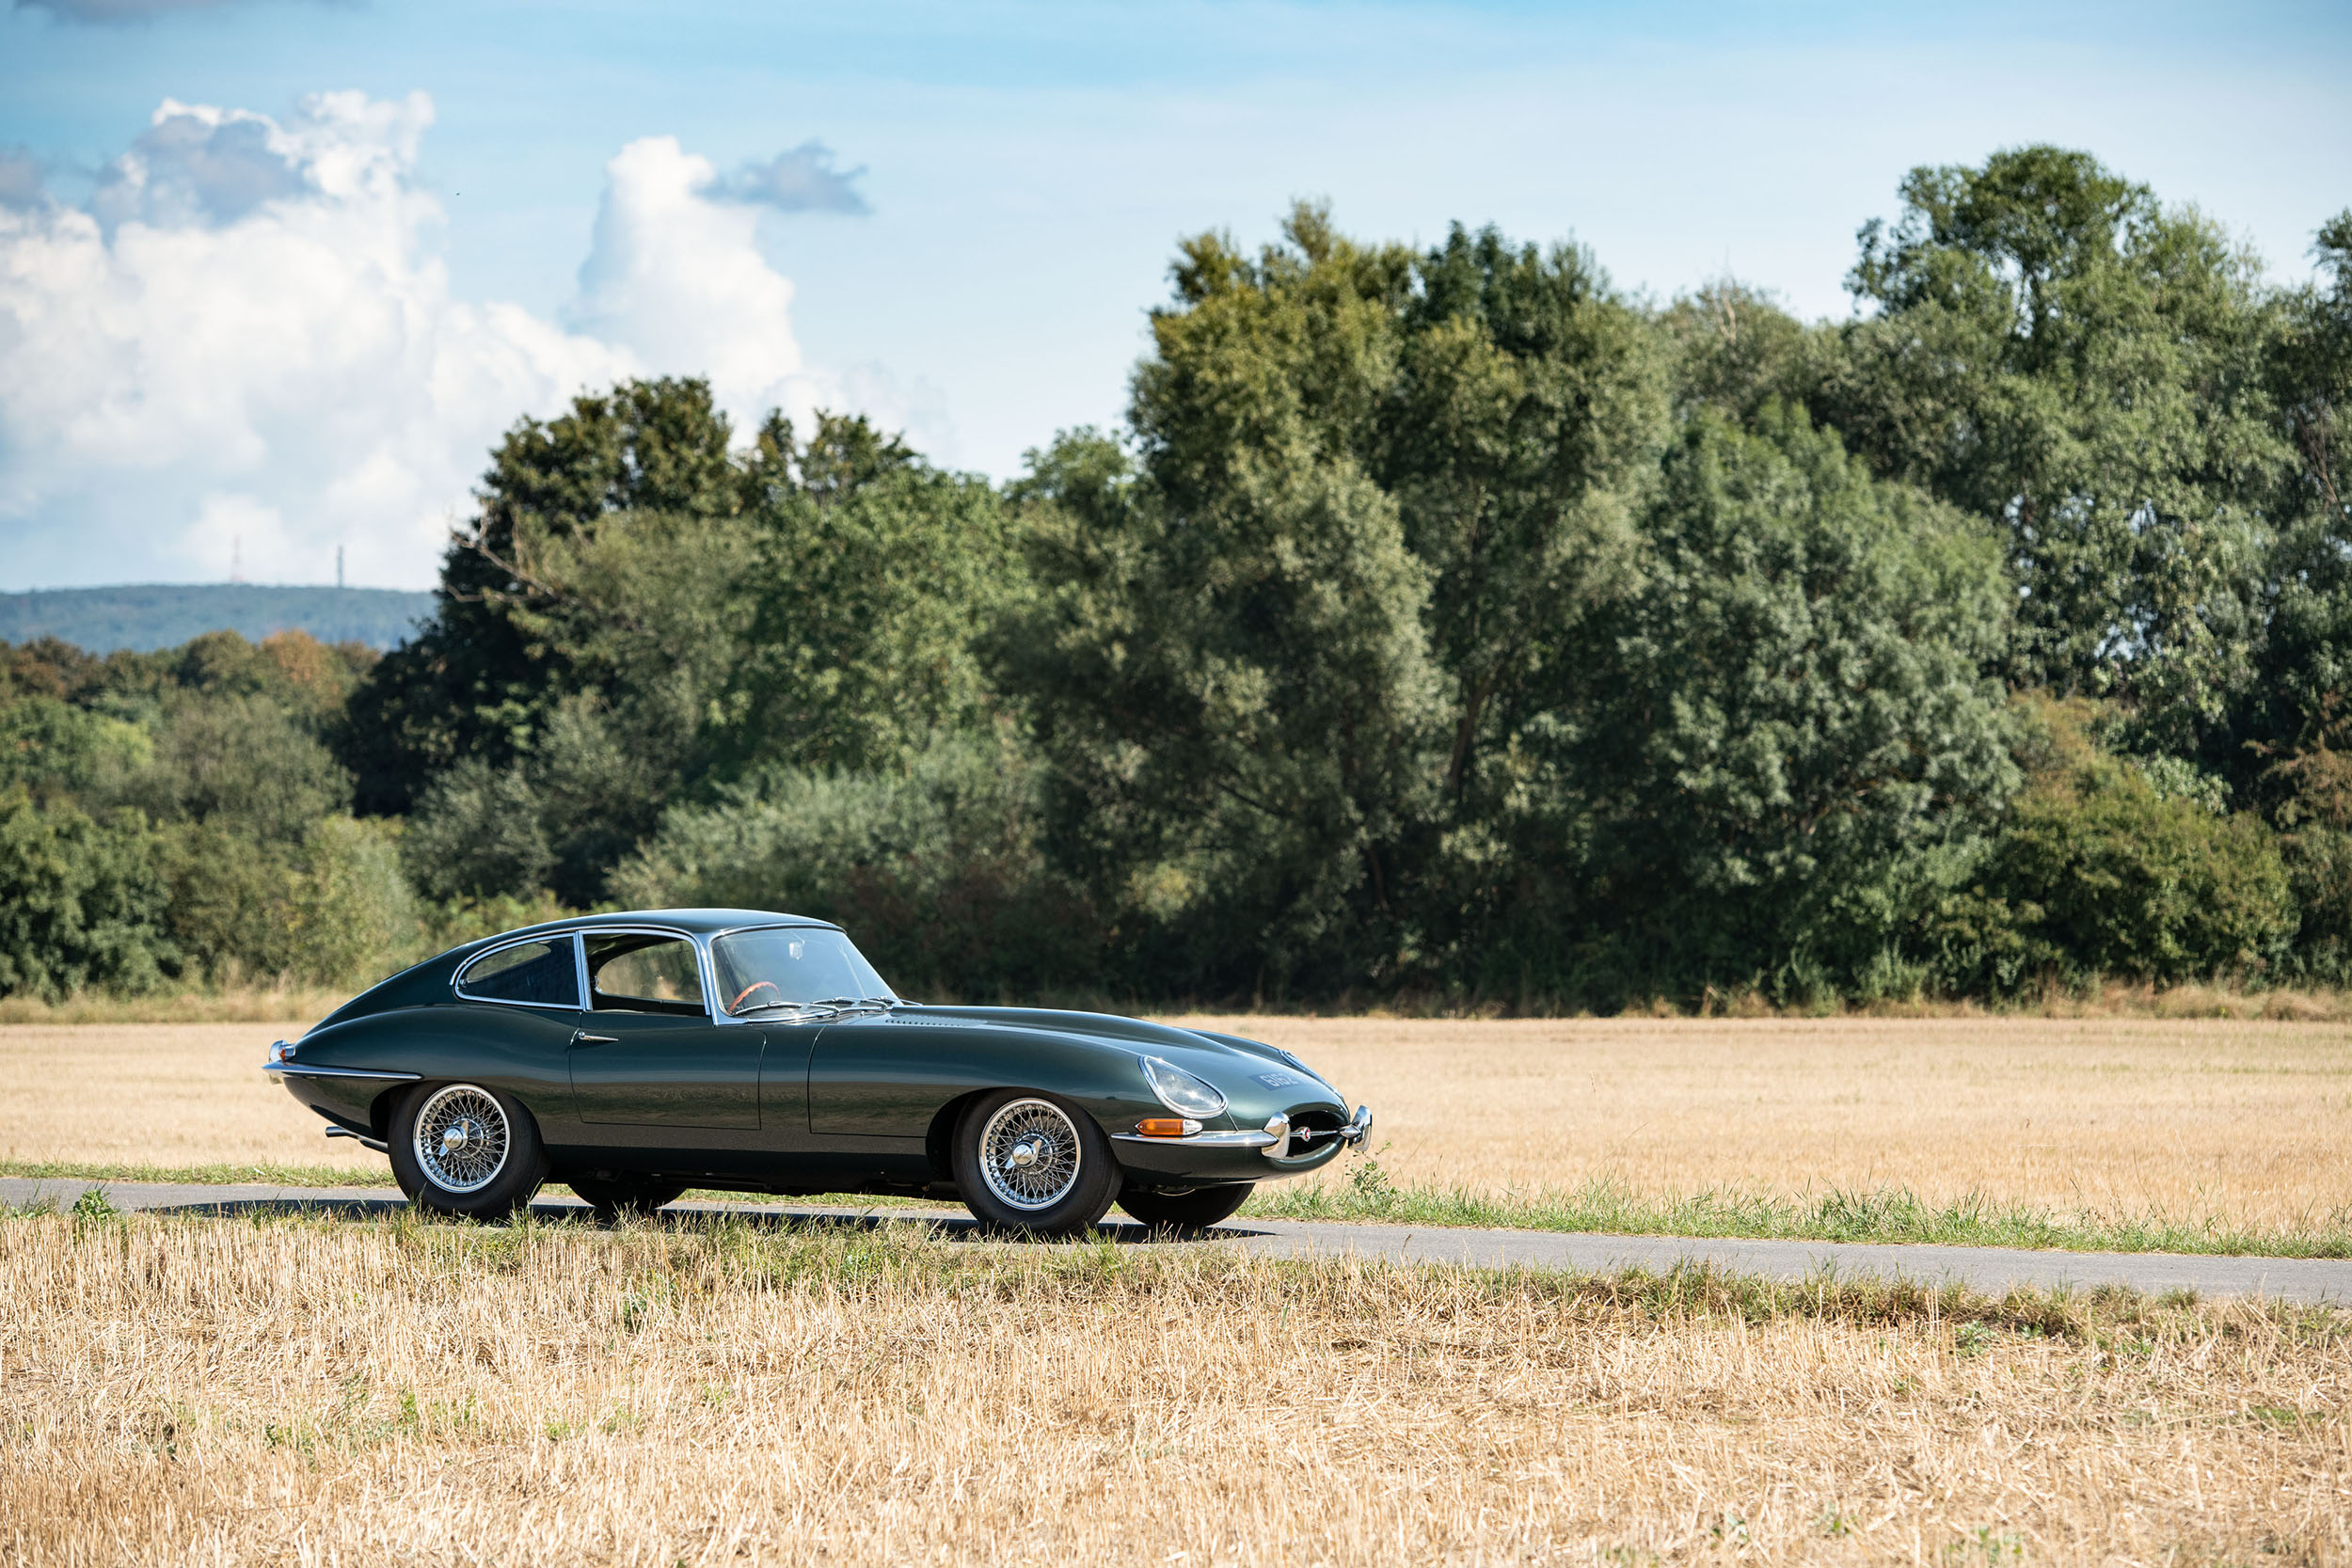 201021 1961 Jaguar E-Type Series 1 3.8-Litre Fixed Head Coupé 'Factory Development' (Credit – ©2020 Courtesy of RM Sotheby's)